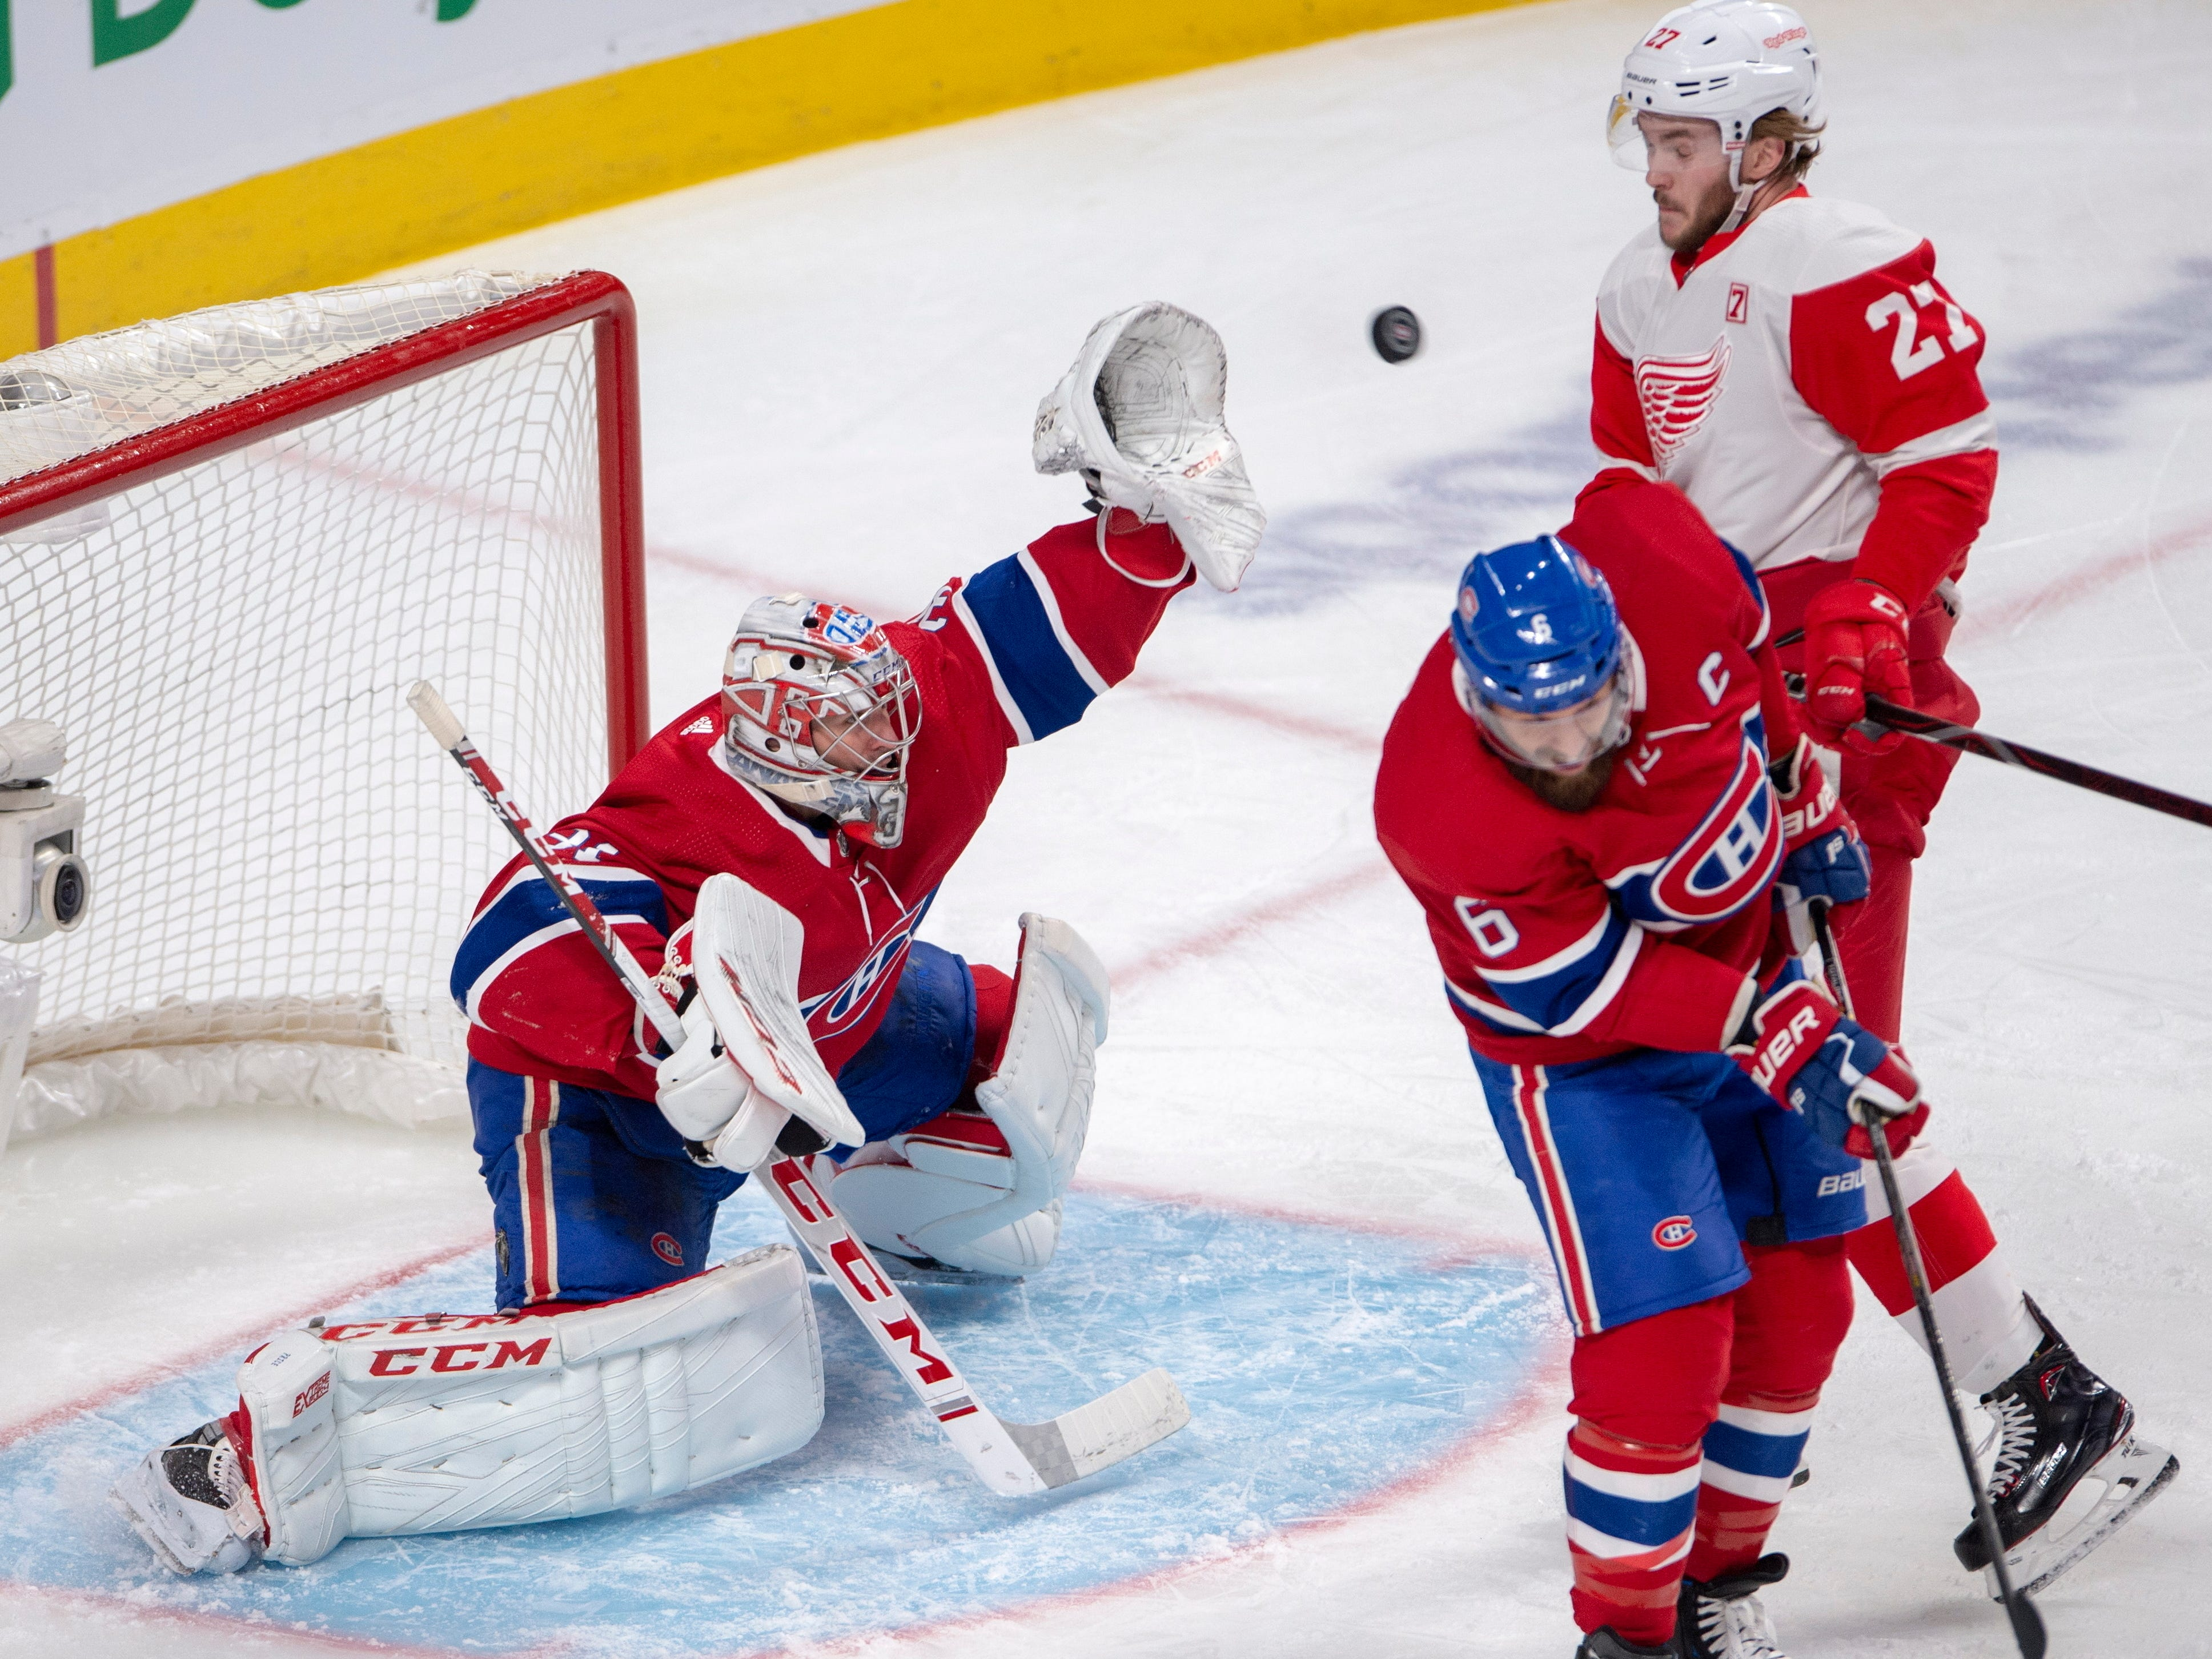 Montreal Canadiens goaltender Carey Price (31) makes a save as Detroit Red Wings center Michael Rasmussen (27) and Montreal Canadiens defenseman Shea Weber (6) watch during the second period.